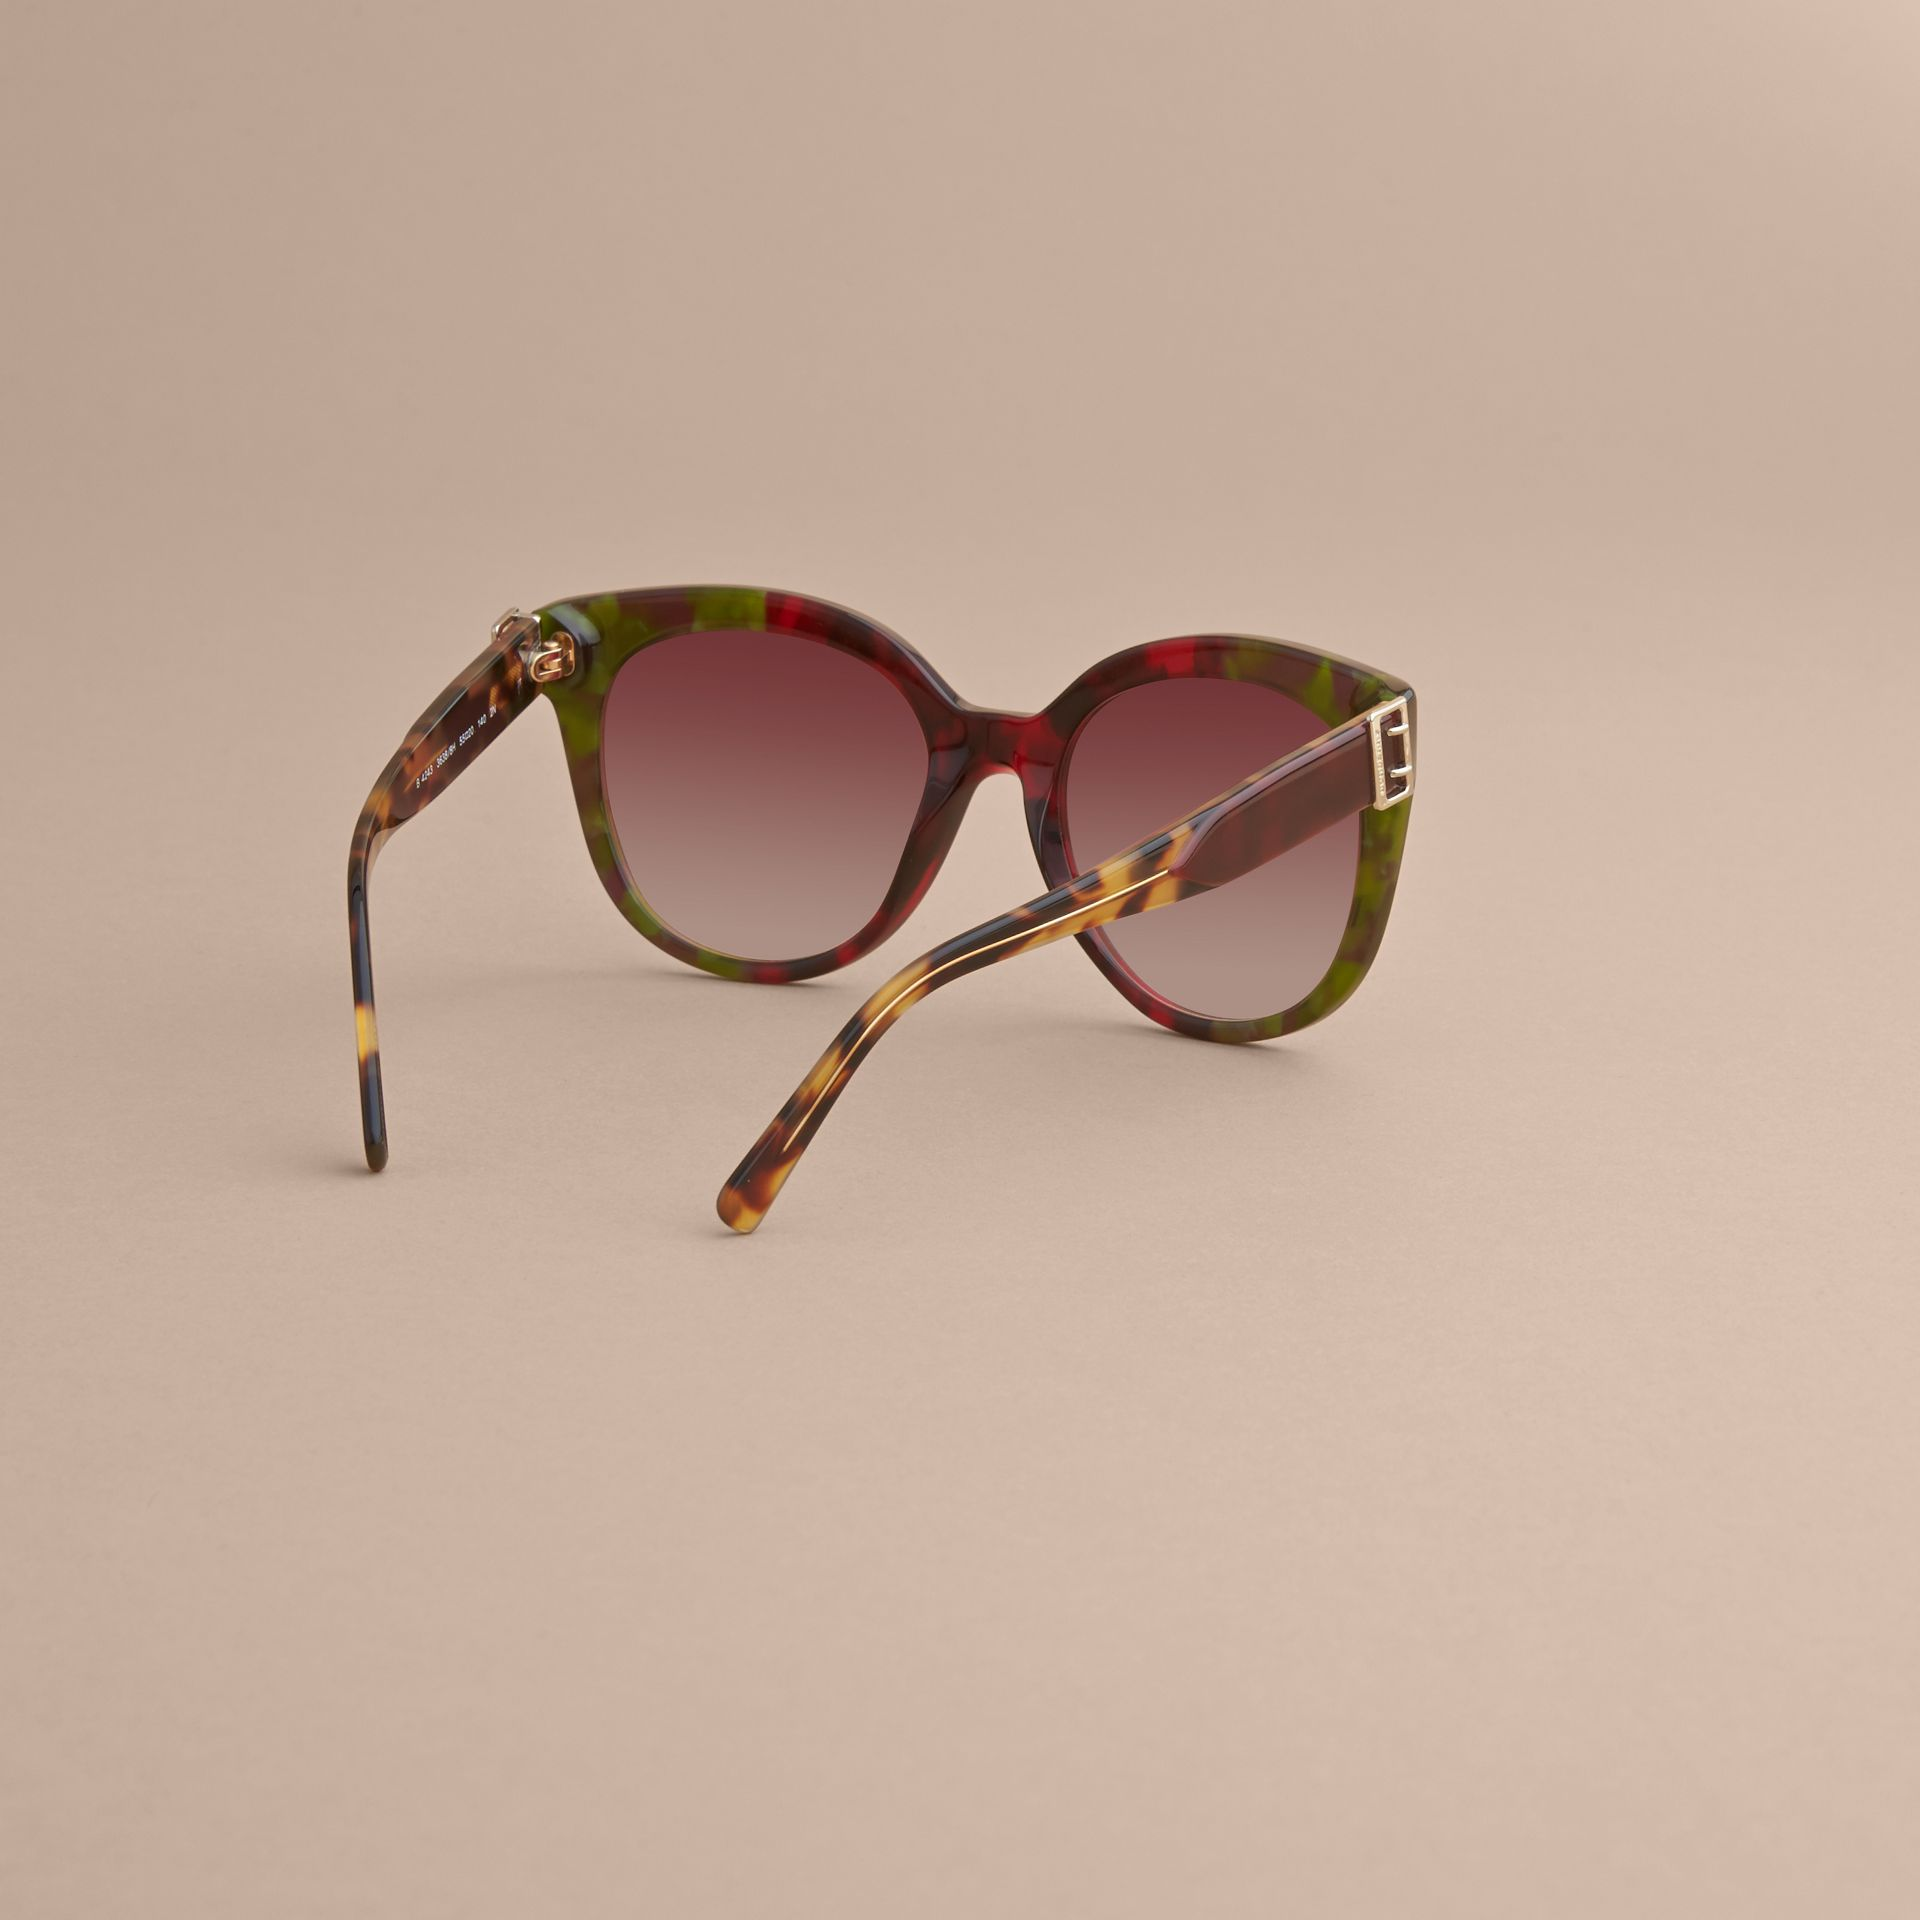 Buckle Detail Cat-eye Frame Sunglasses in Cardinal Red - Women | Burberry Canada - gallery image 3